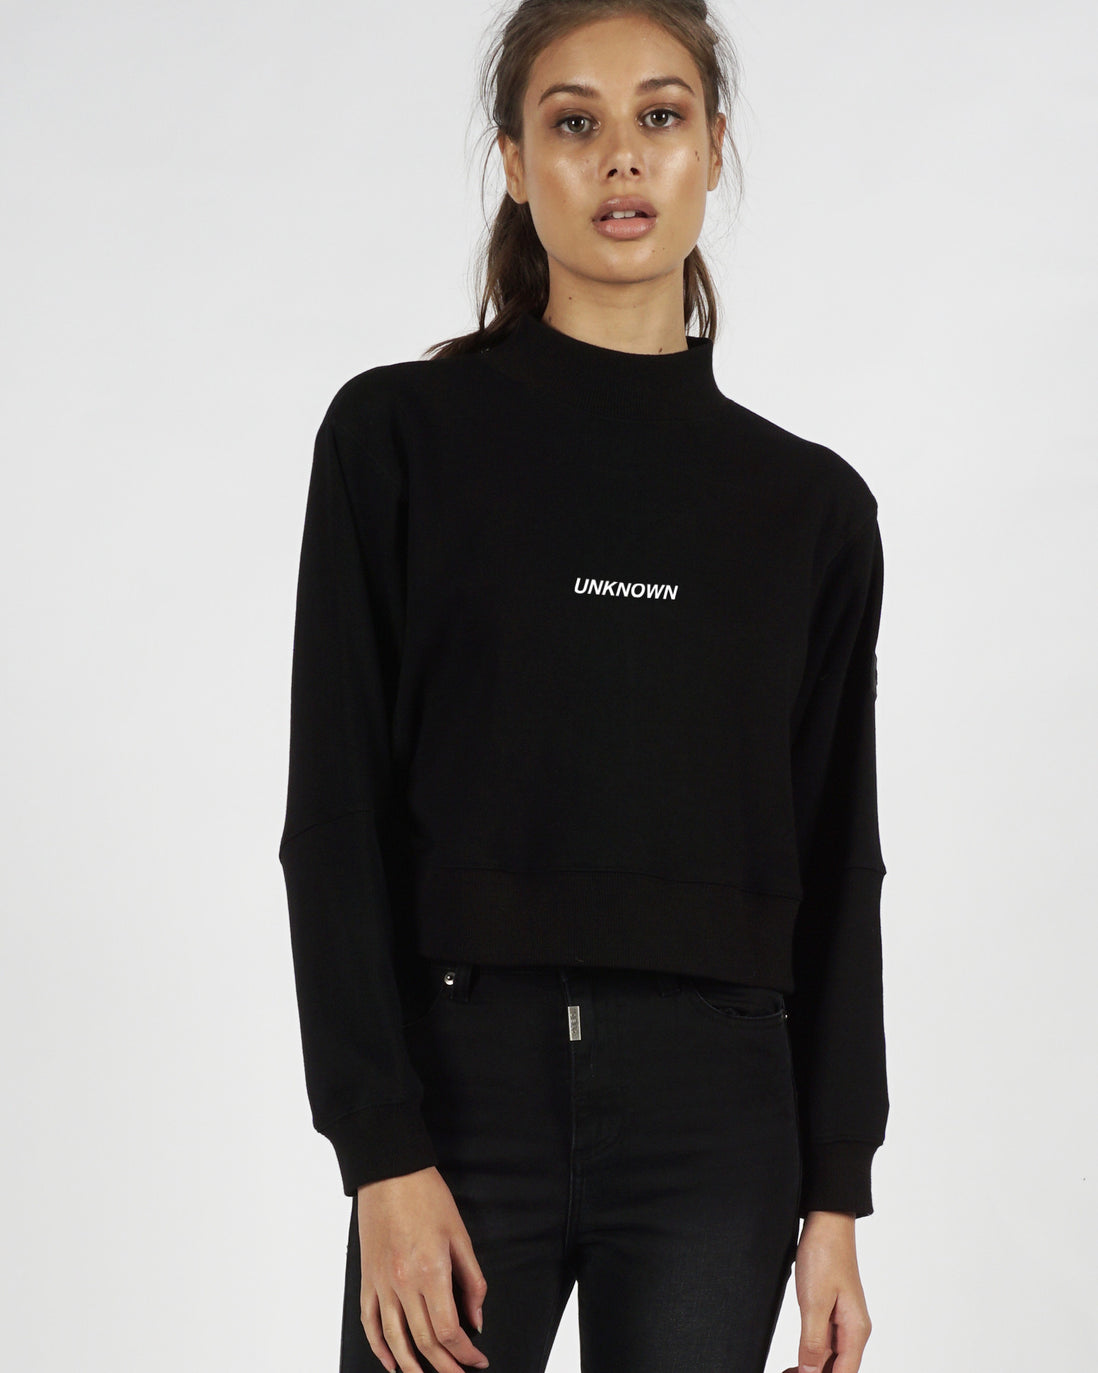 UNKNOWN CROP SWEATER